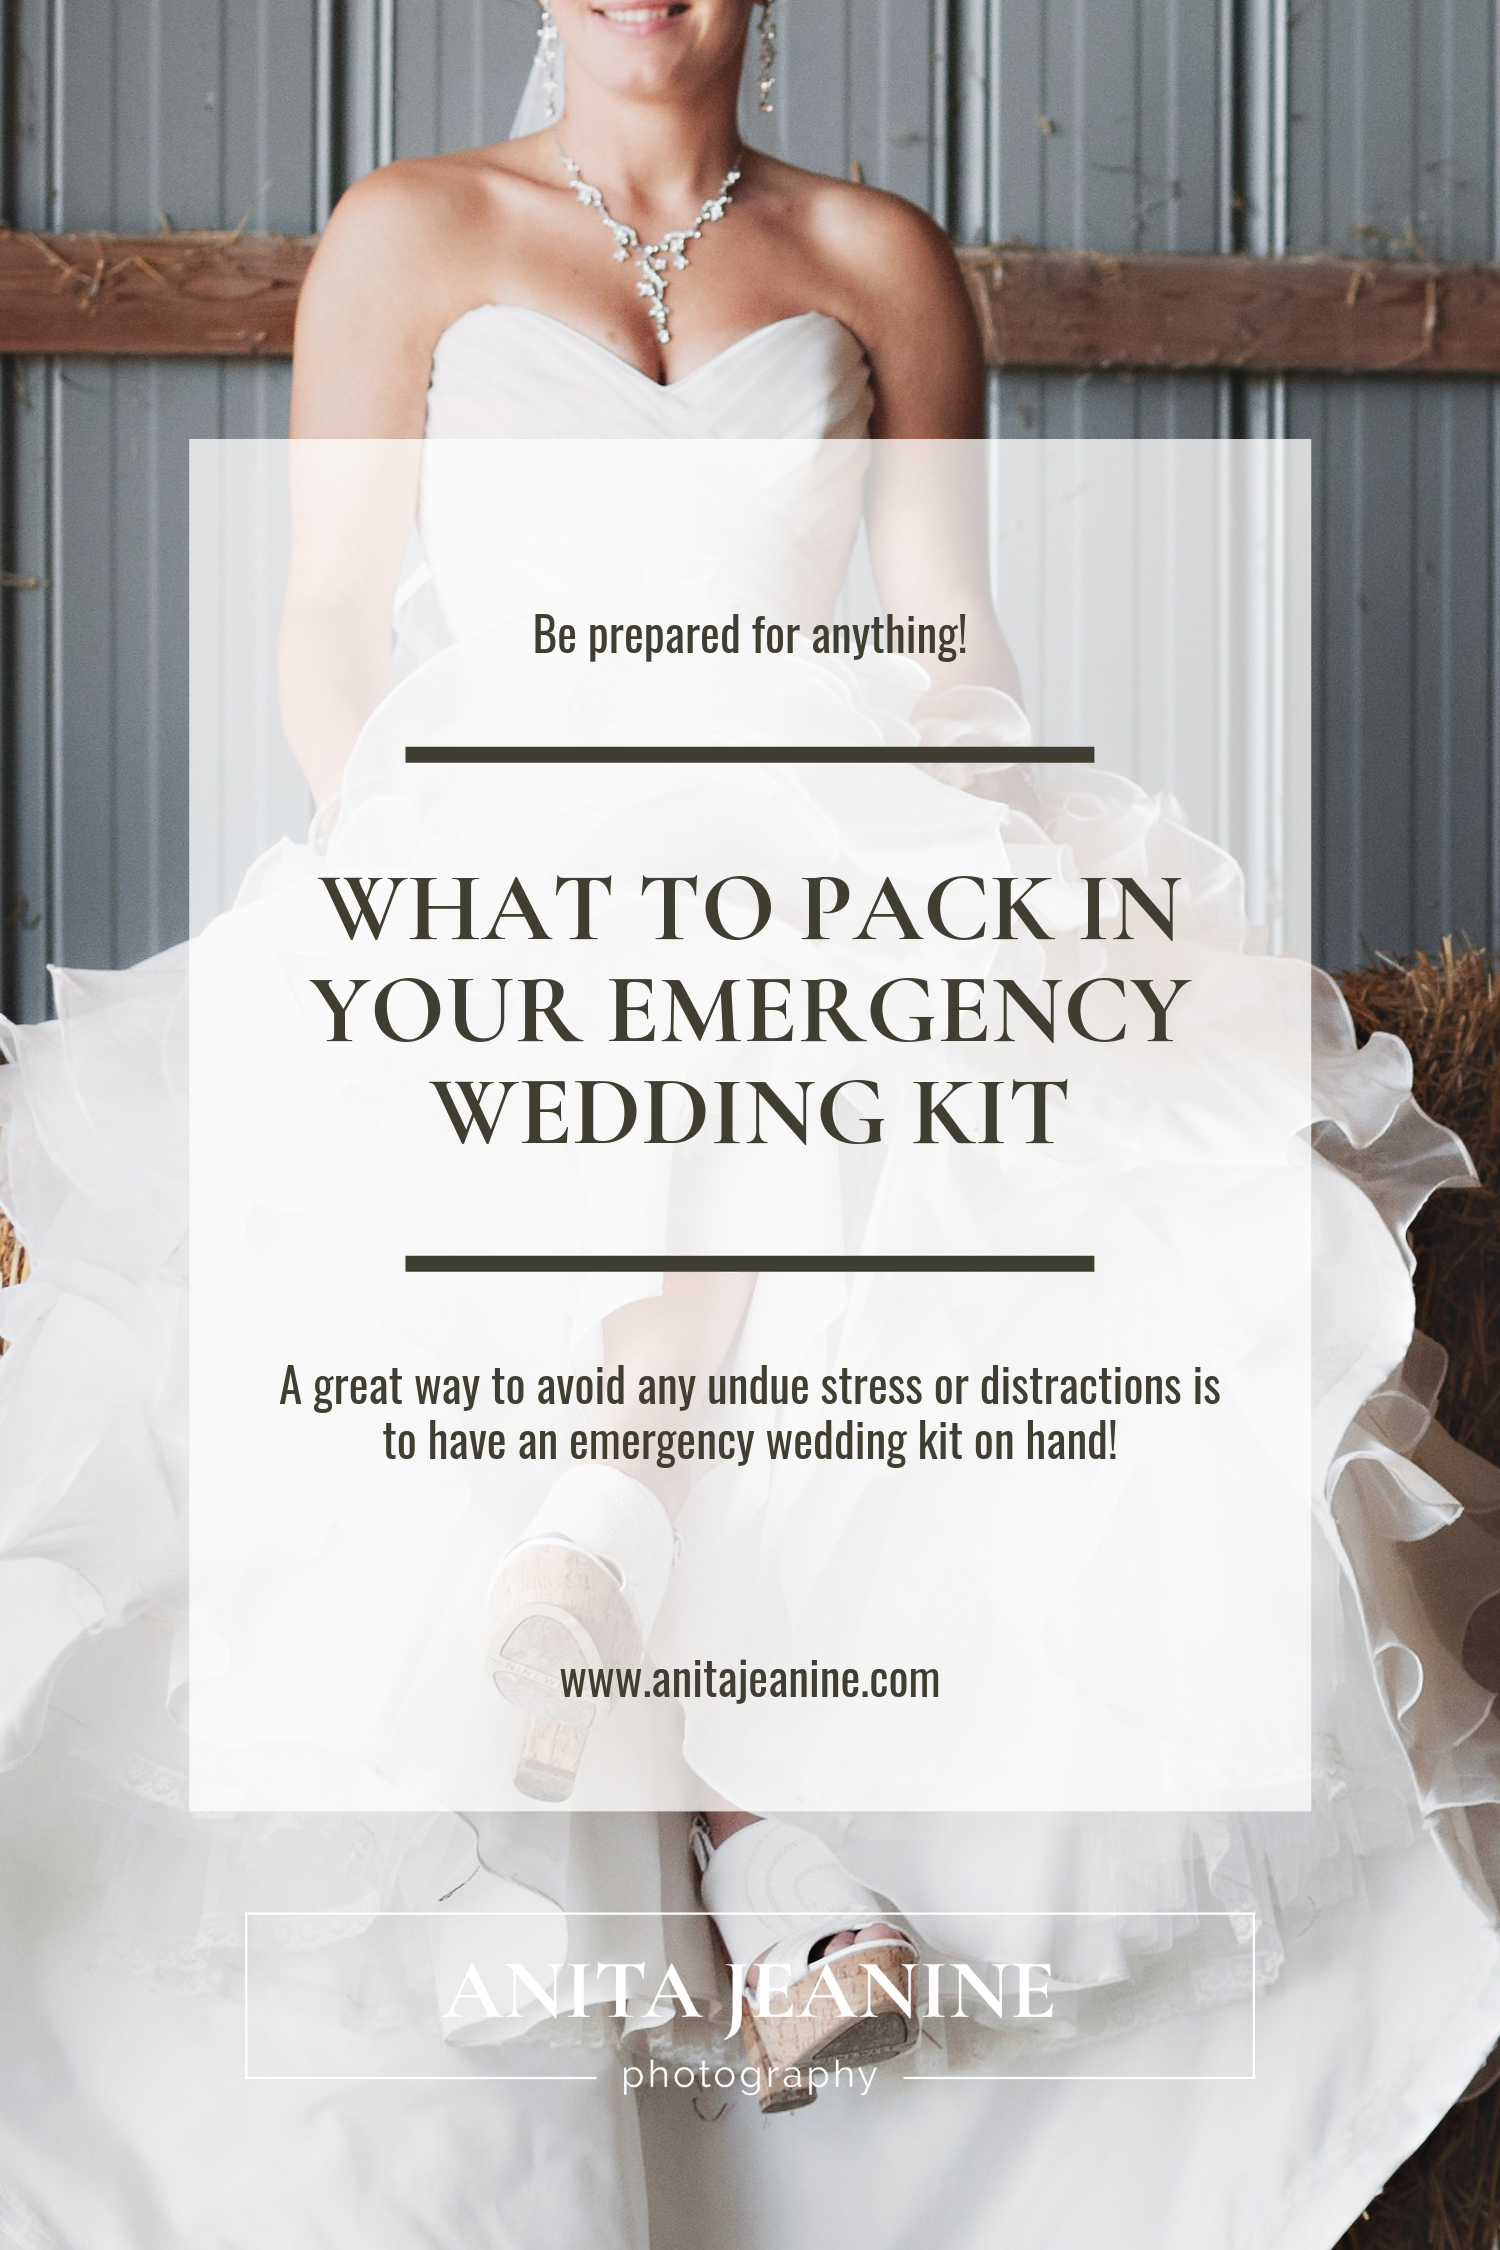 What to Pack in Your Emergency Wedding Kit